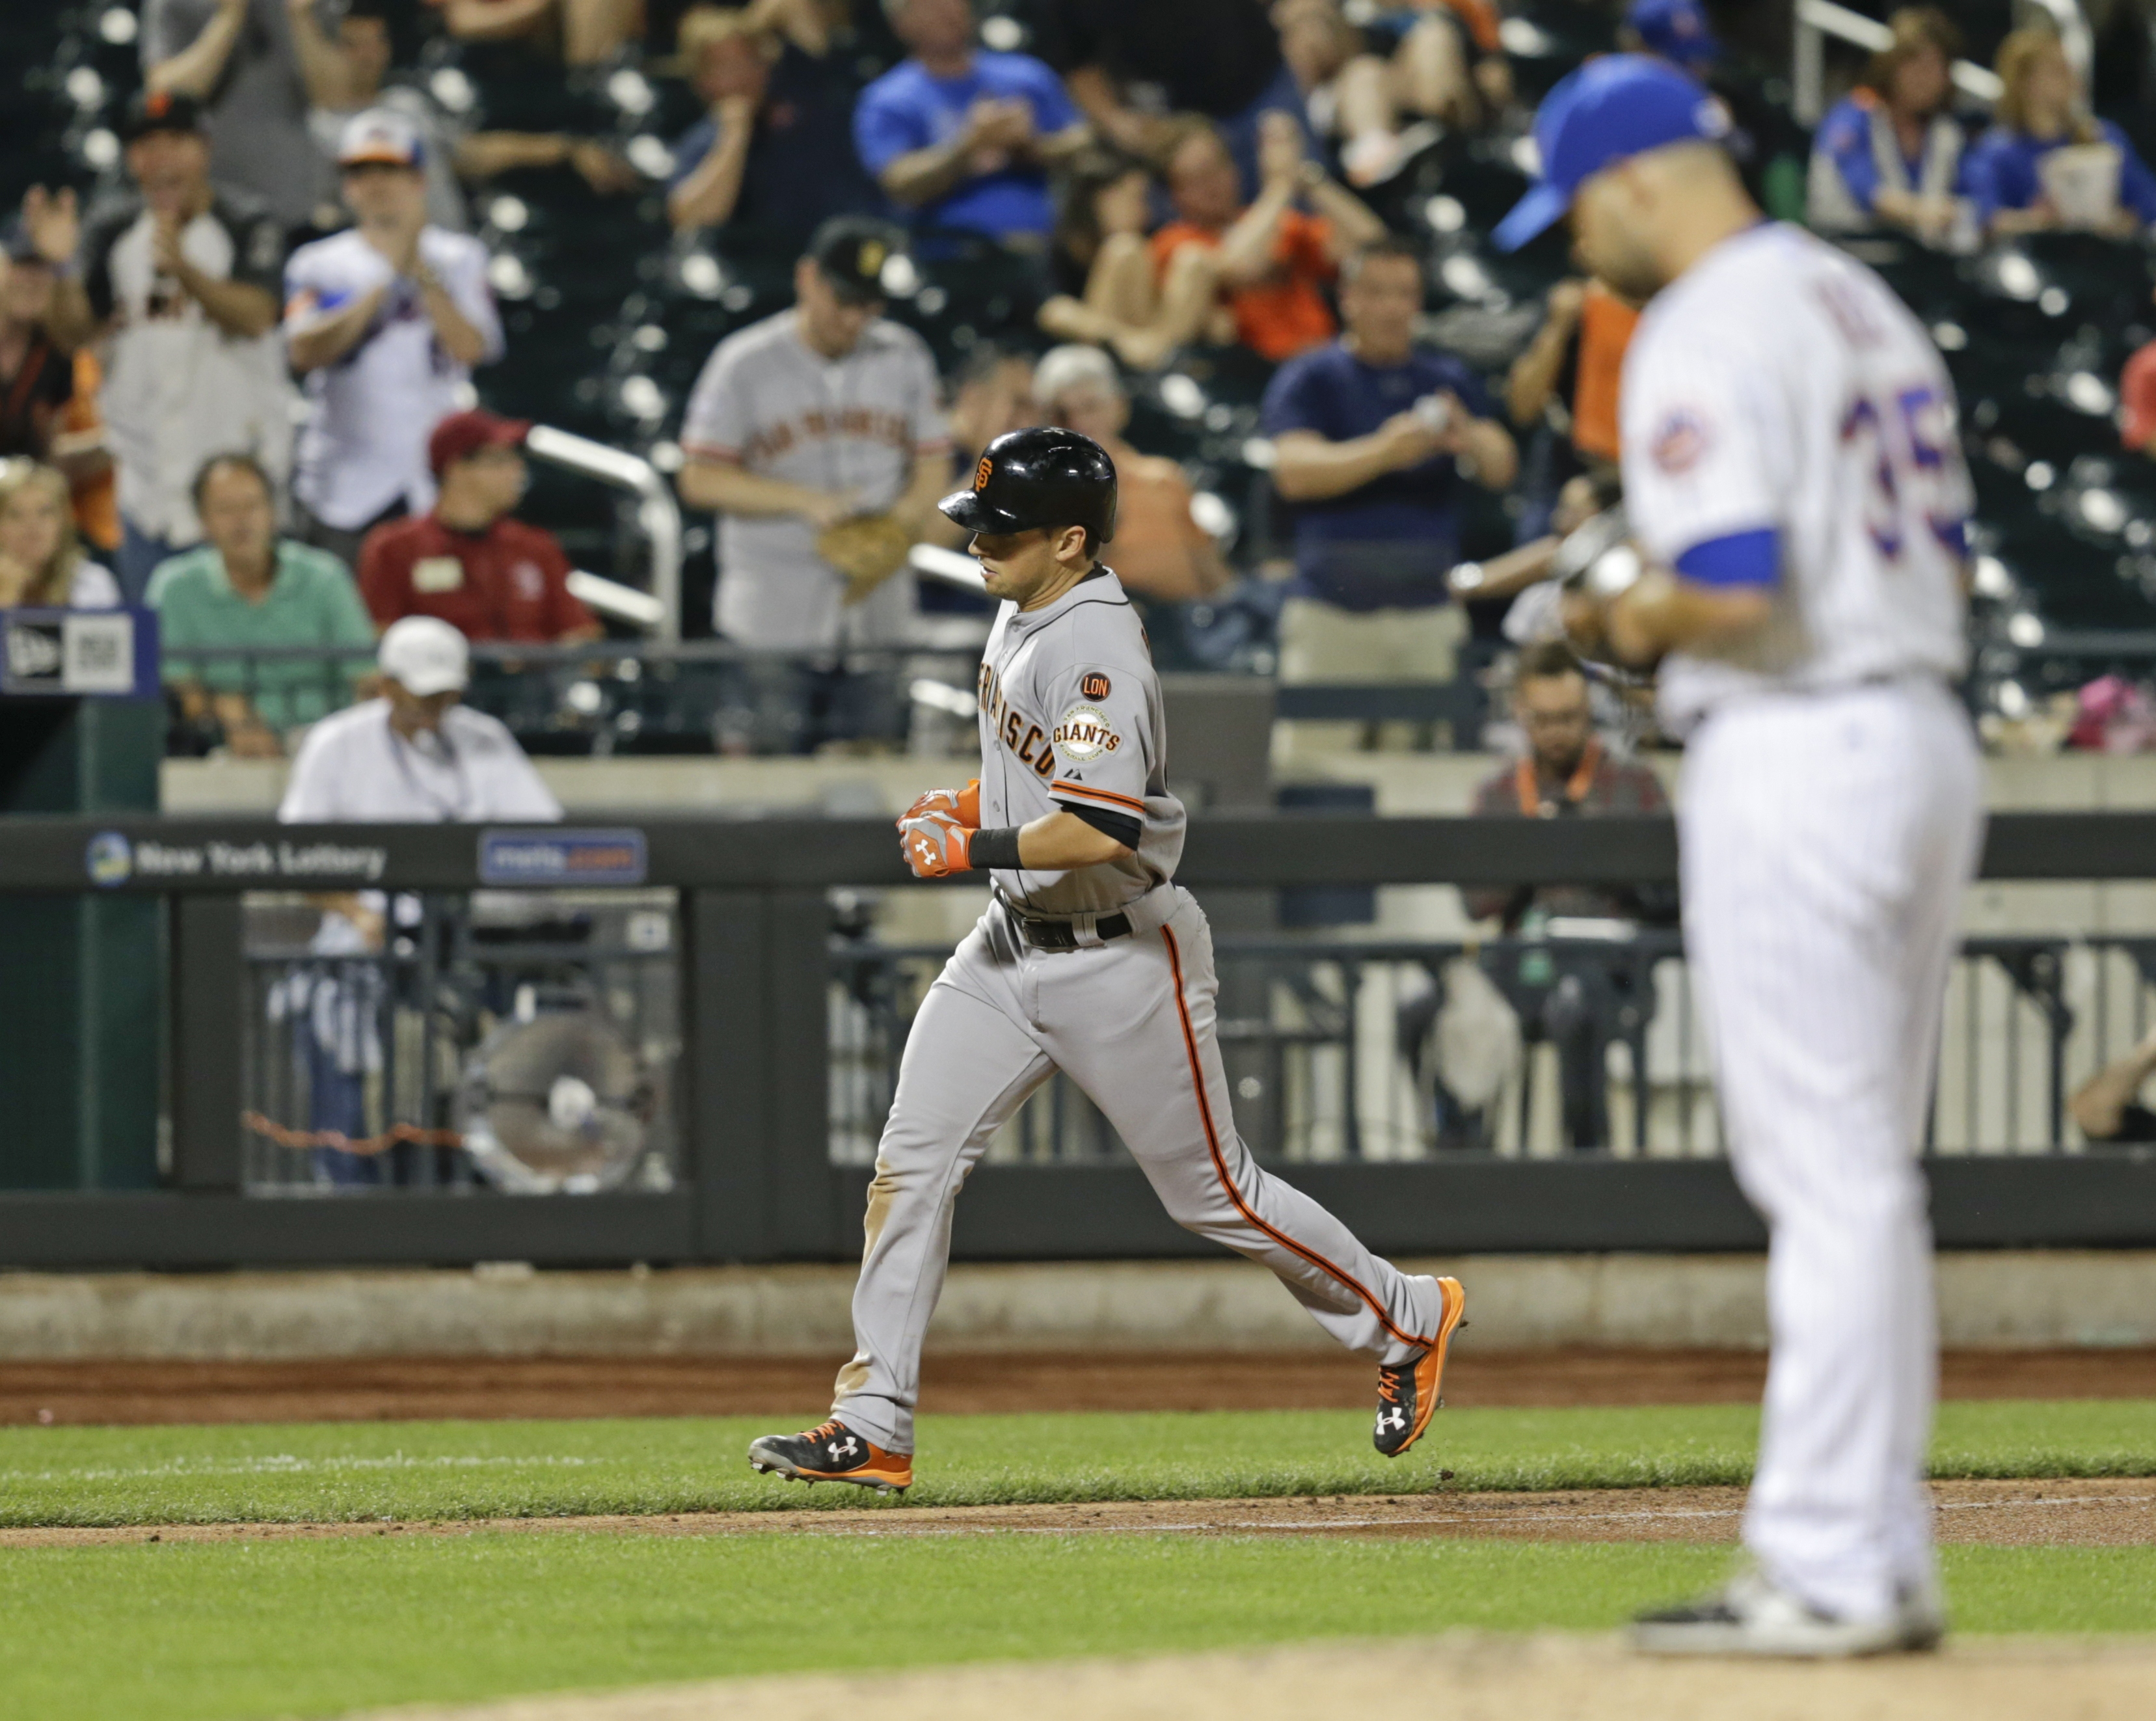 San Francisco Giants' Joe Panik heads home after hitting a home run off New York Mets pitcher Dillon Gee (35) during the seventh inning of a baseball game Tuesday, June 9, 2015, in New York. (AP Photo/Frank Franklin II)